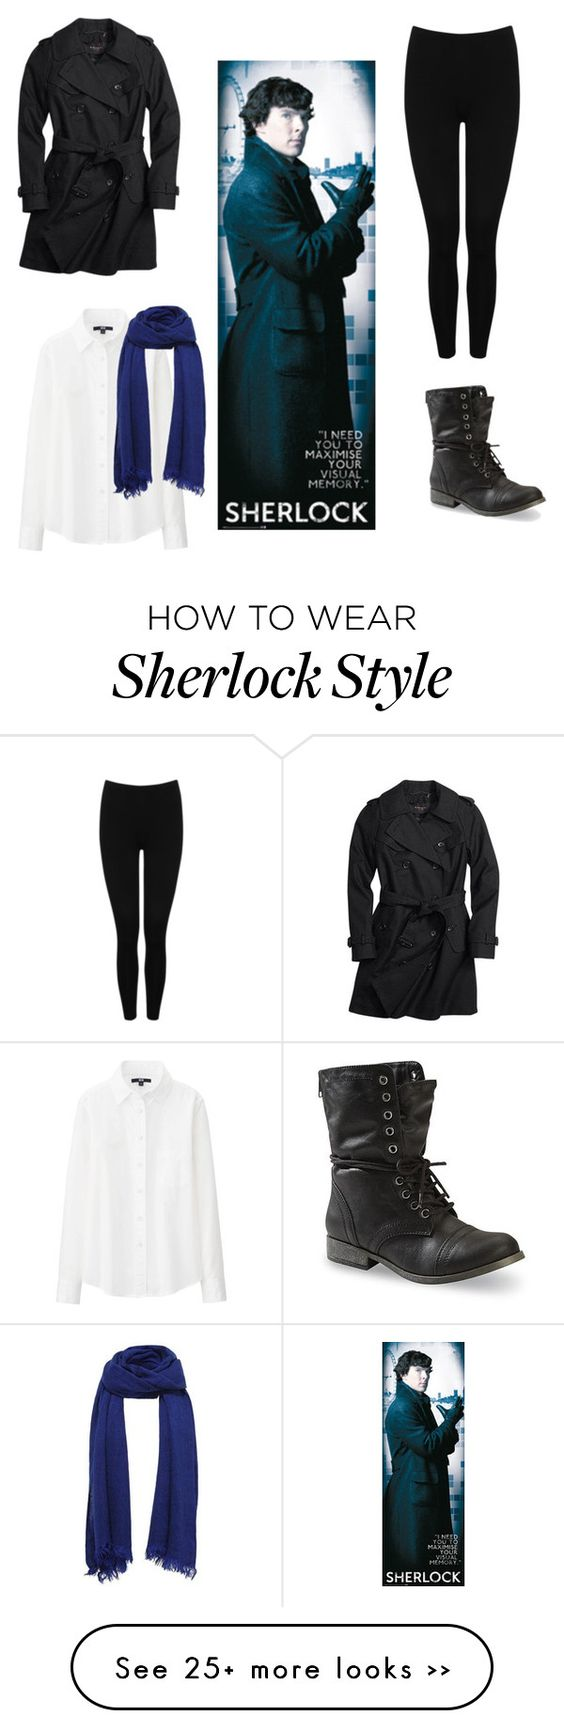 """""""Benedict Cumberbatch Sherlock cosplay"""" by the-girl-in-the-converse-shoes on Polyvore"""